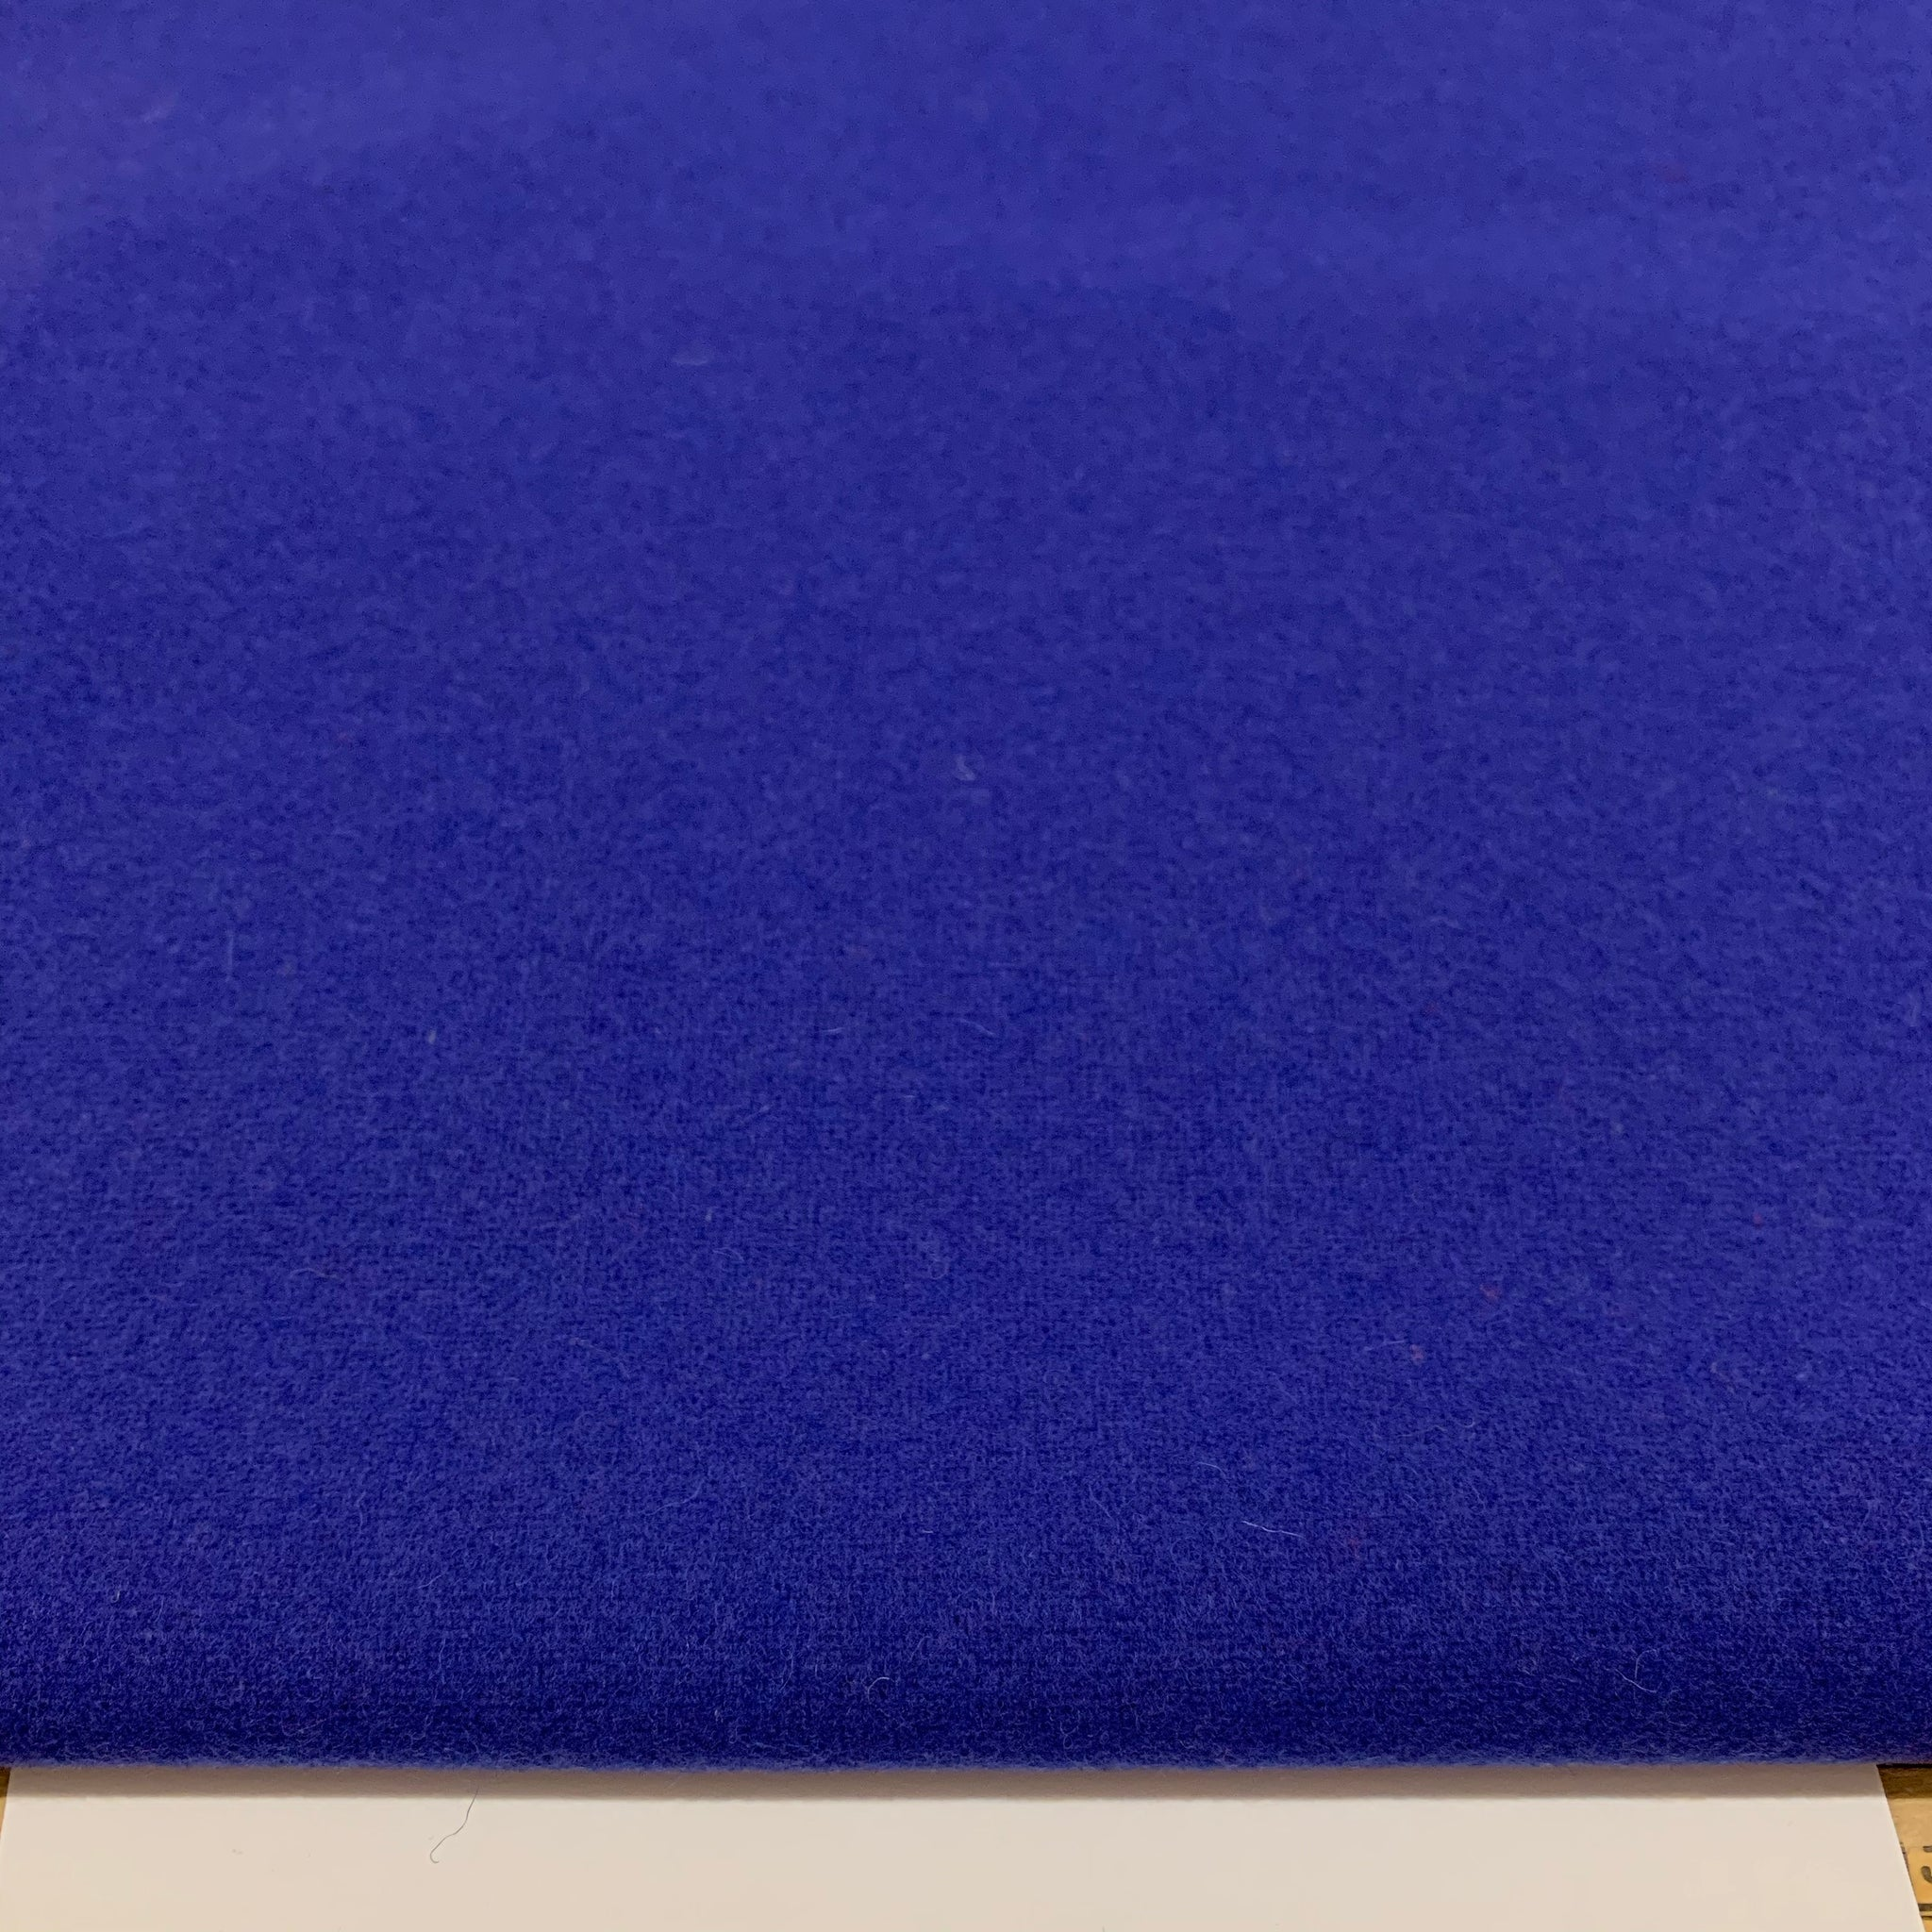 Wool Coating Blueberry